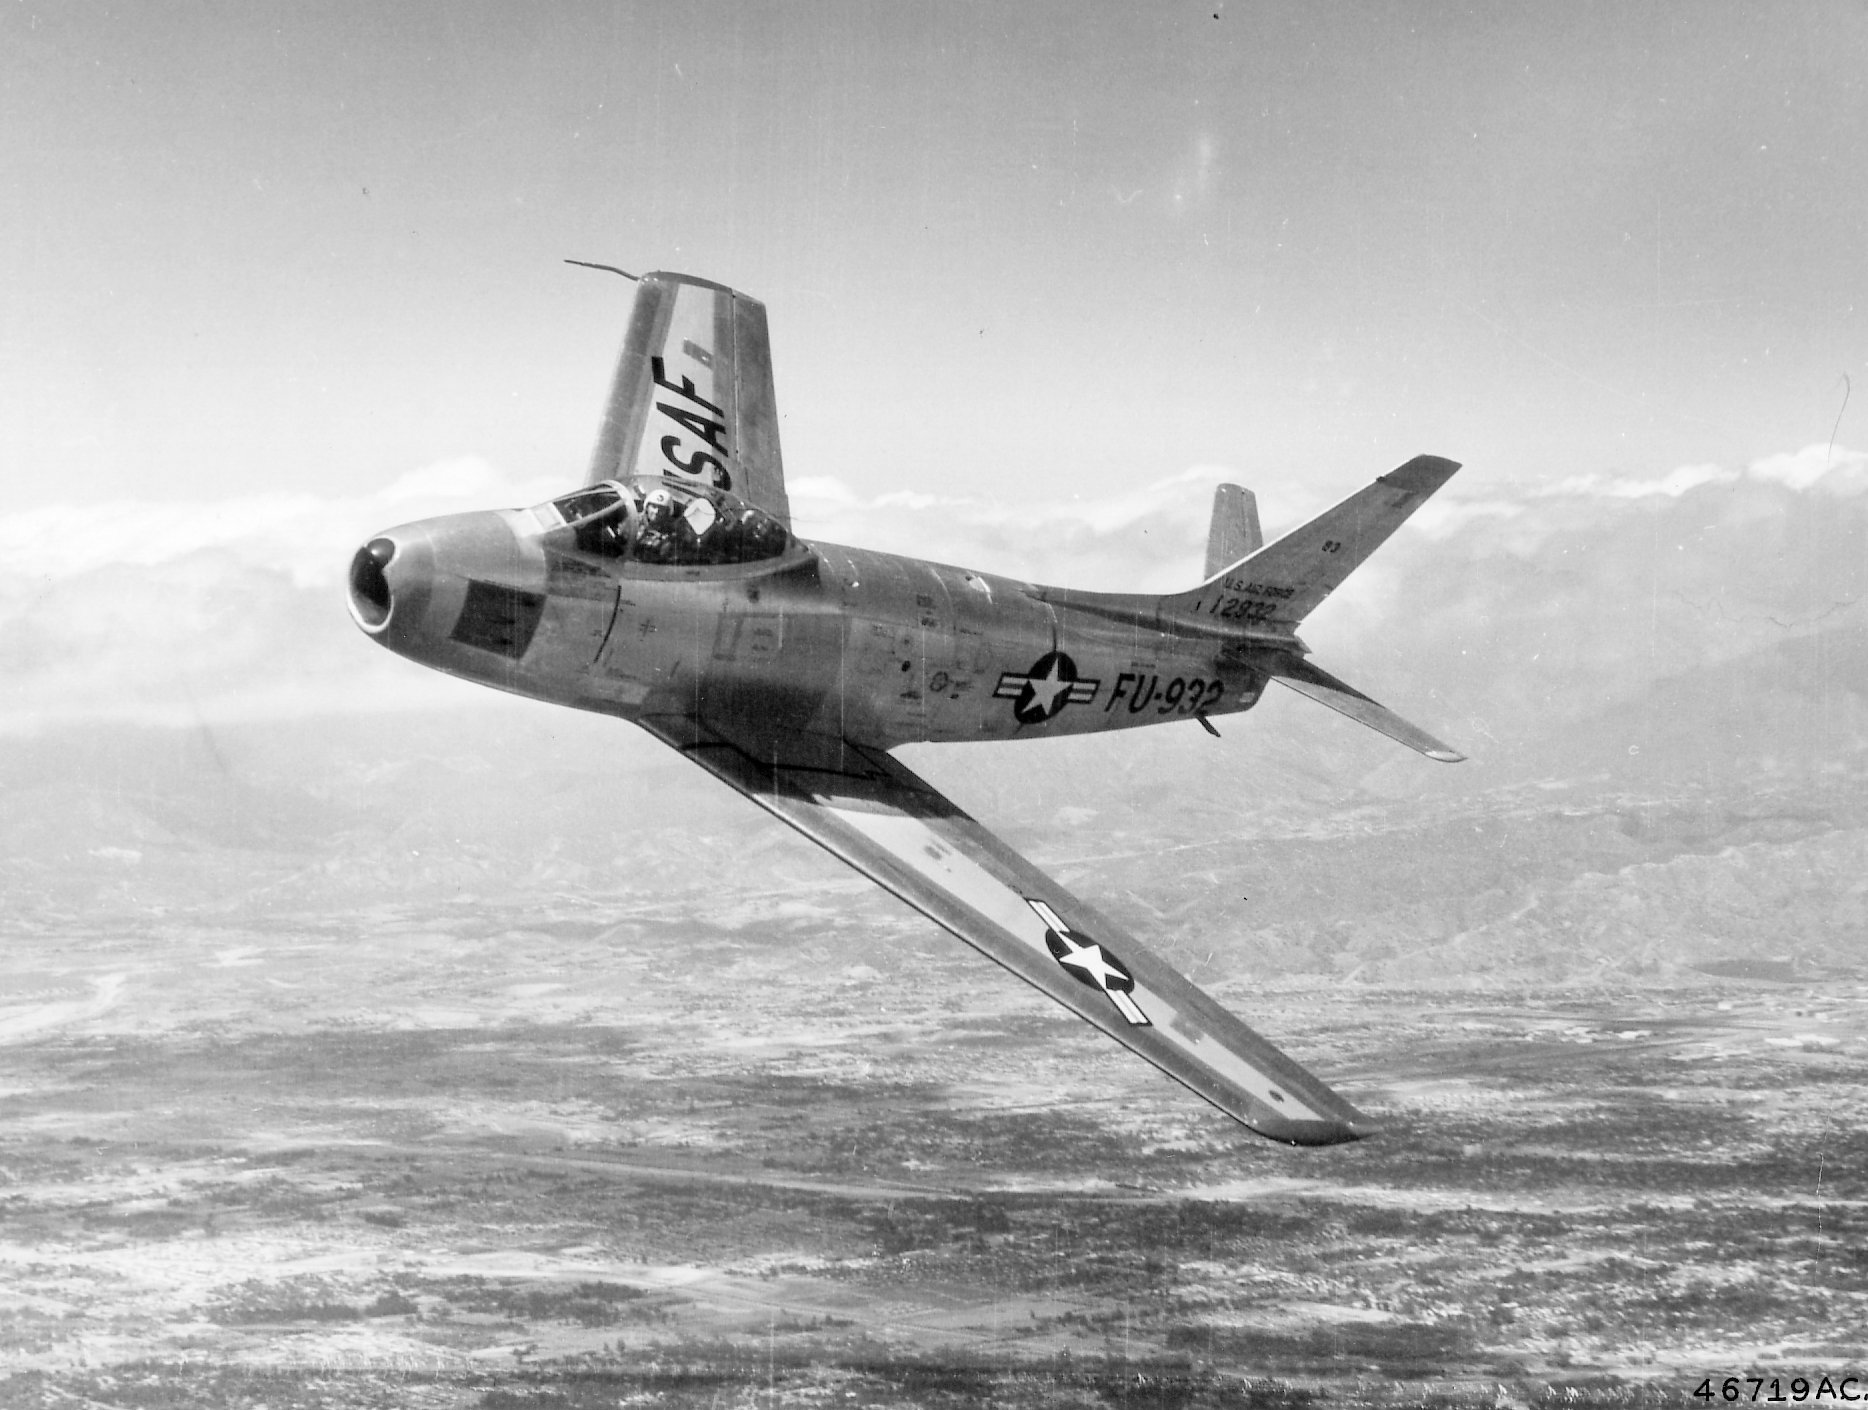 North American F-86F Sabre, 1953